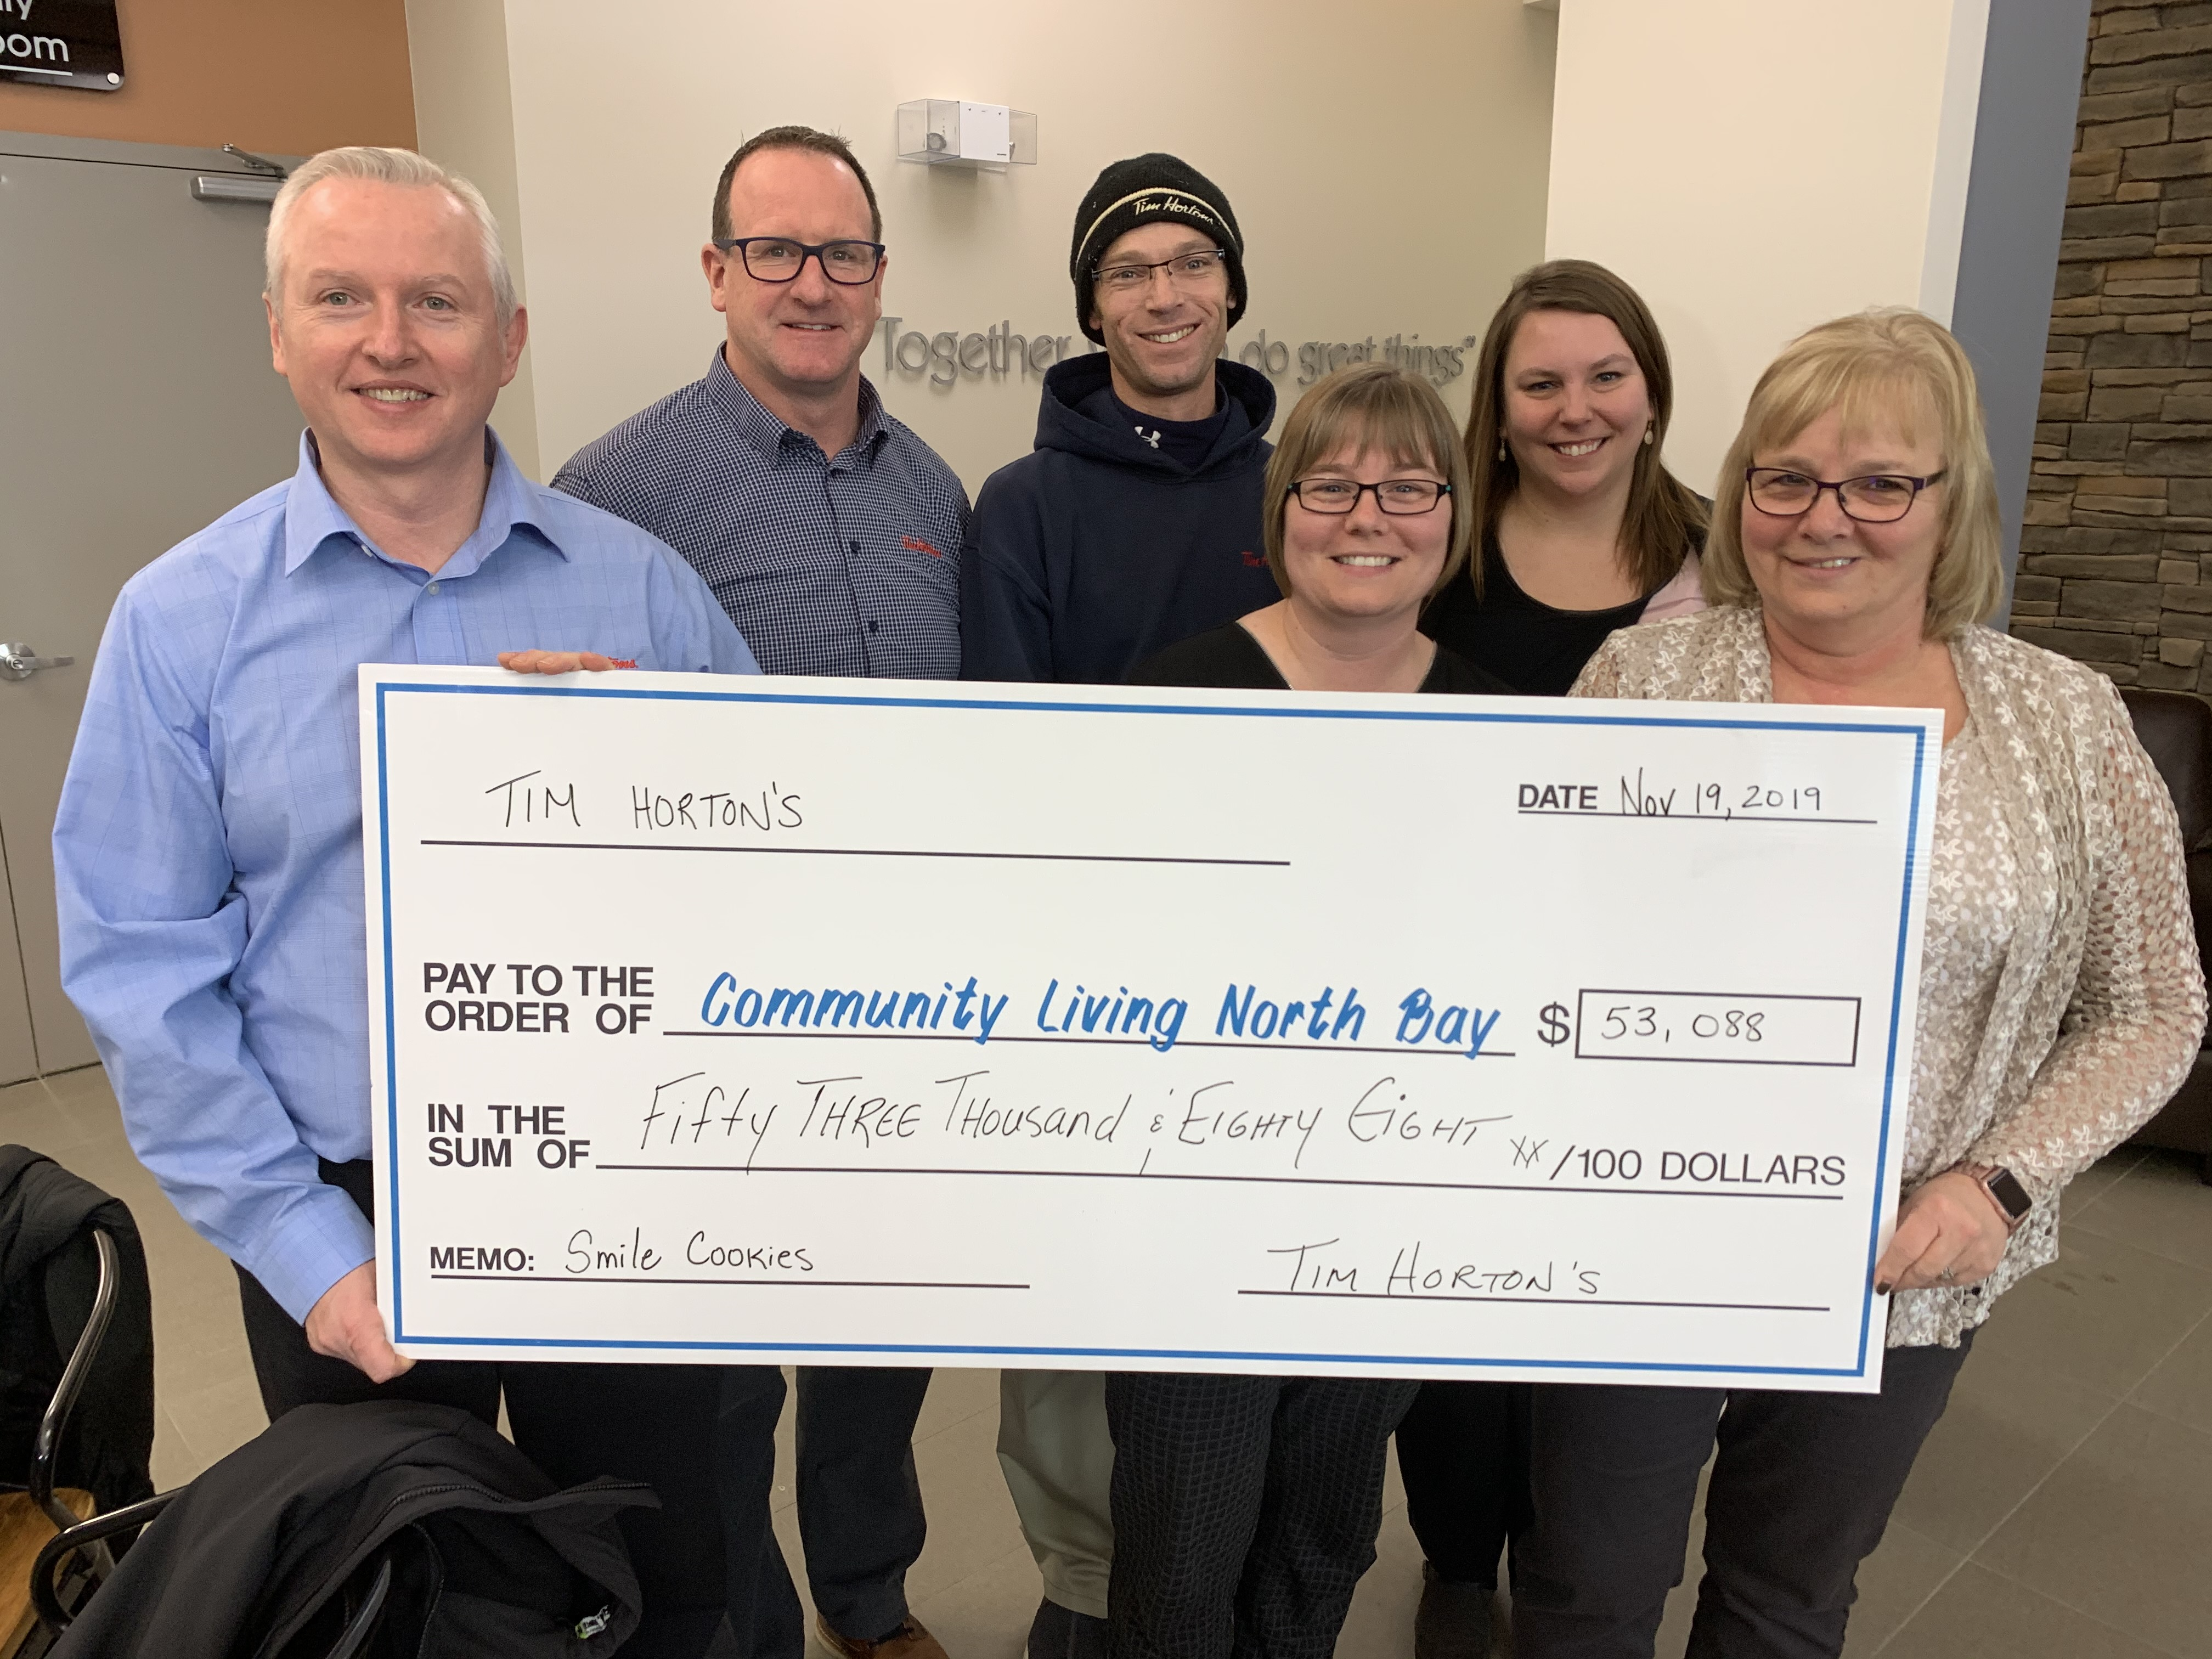 Unique partnership brings smiles in the city and at Community Living North Bay